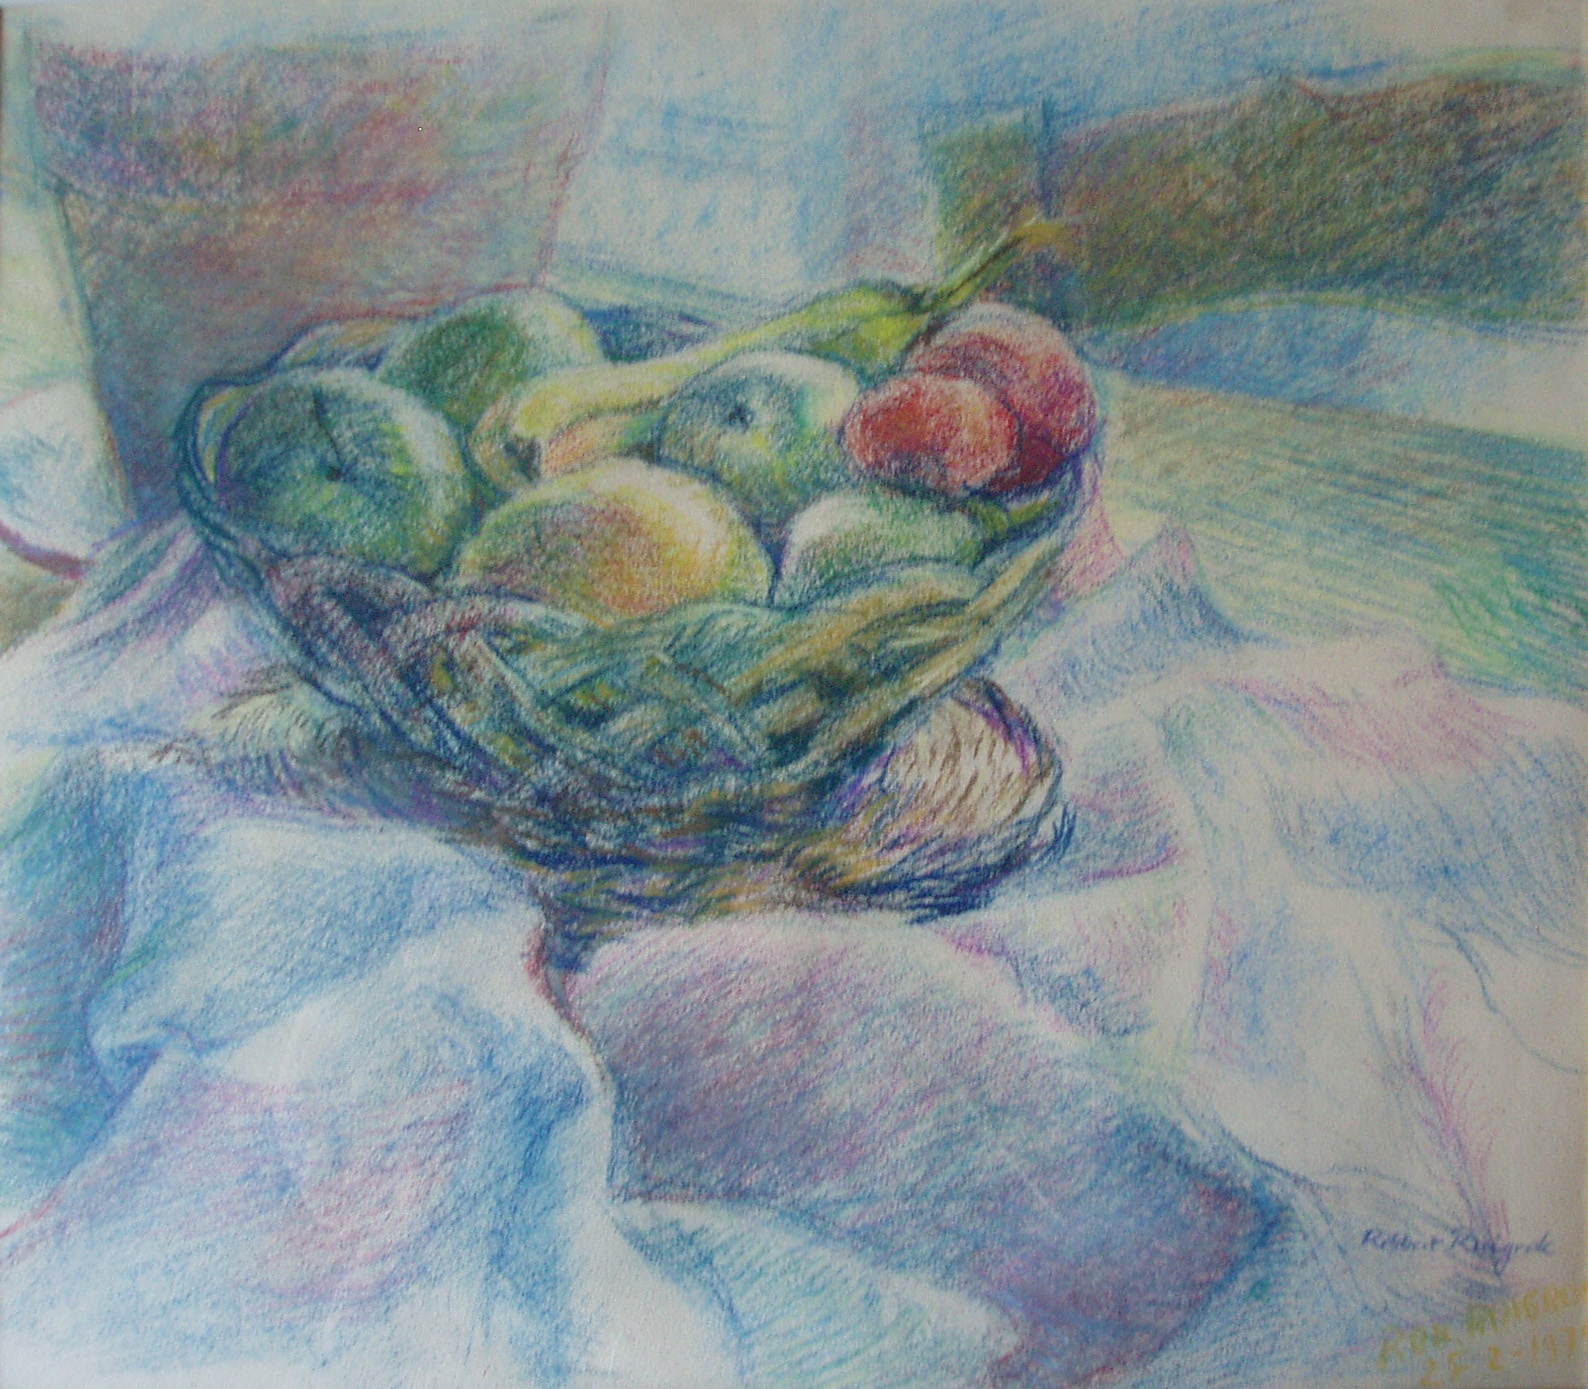 Robbert Ruigrok, 'Stilll Life with Fruit', 1980. Pastel.